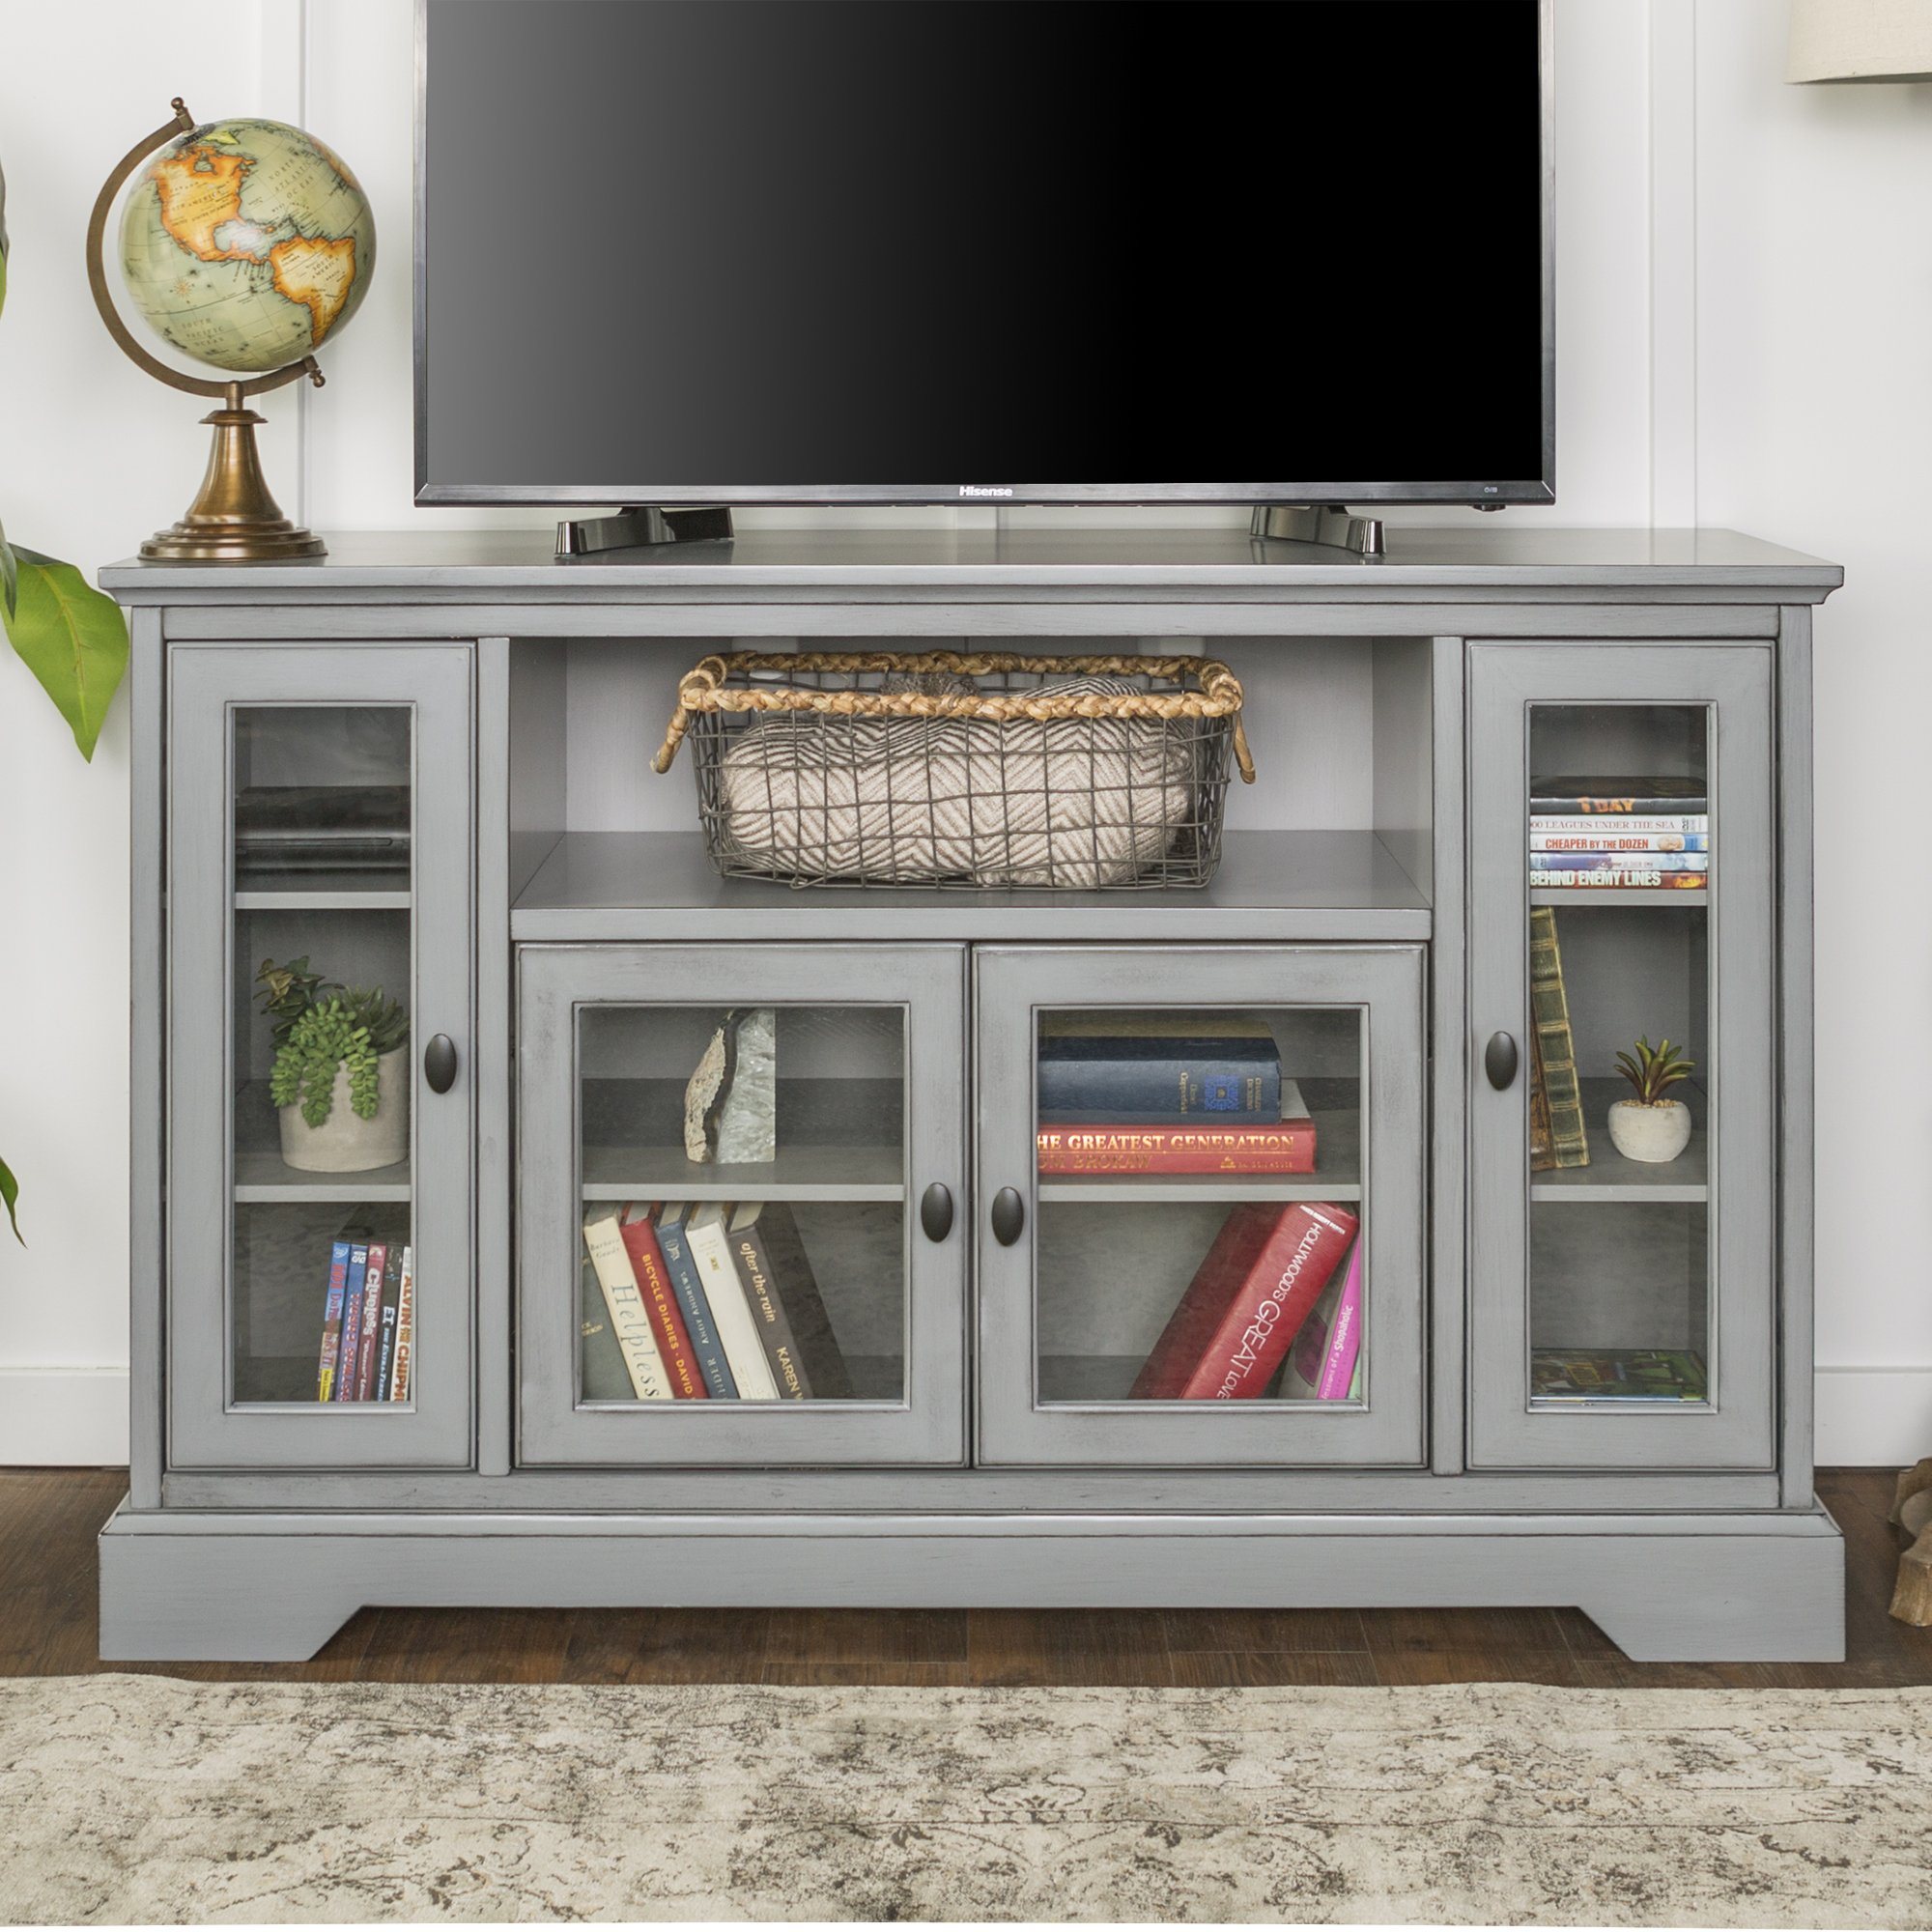 New 52 Inch Wide Highboy Television Stand in Antiqued Grey Finish